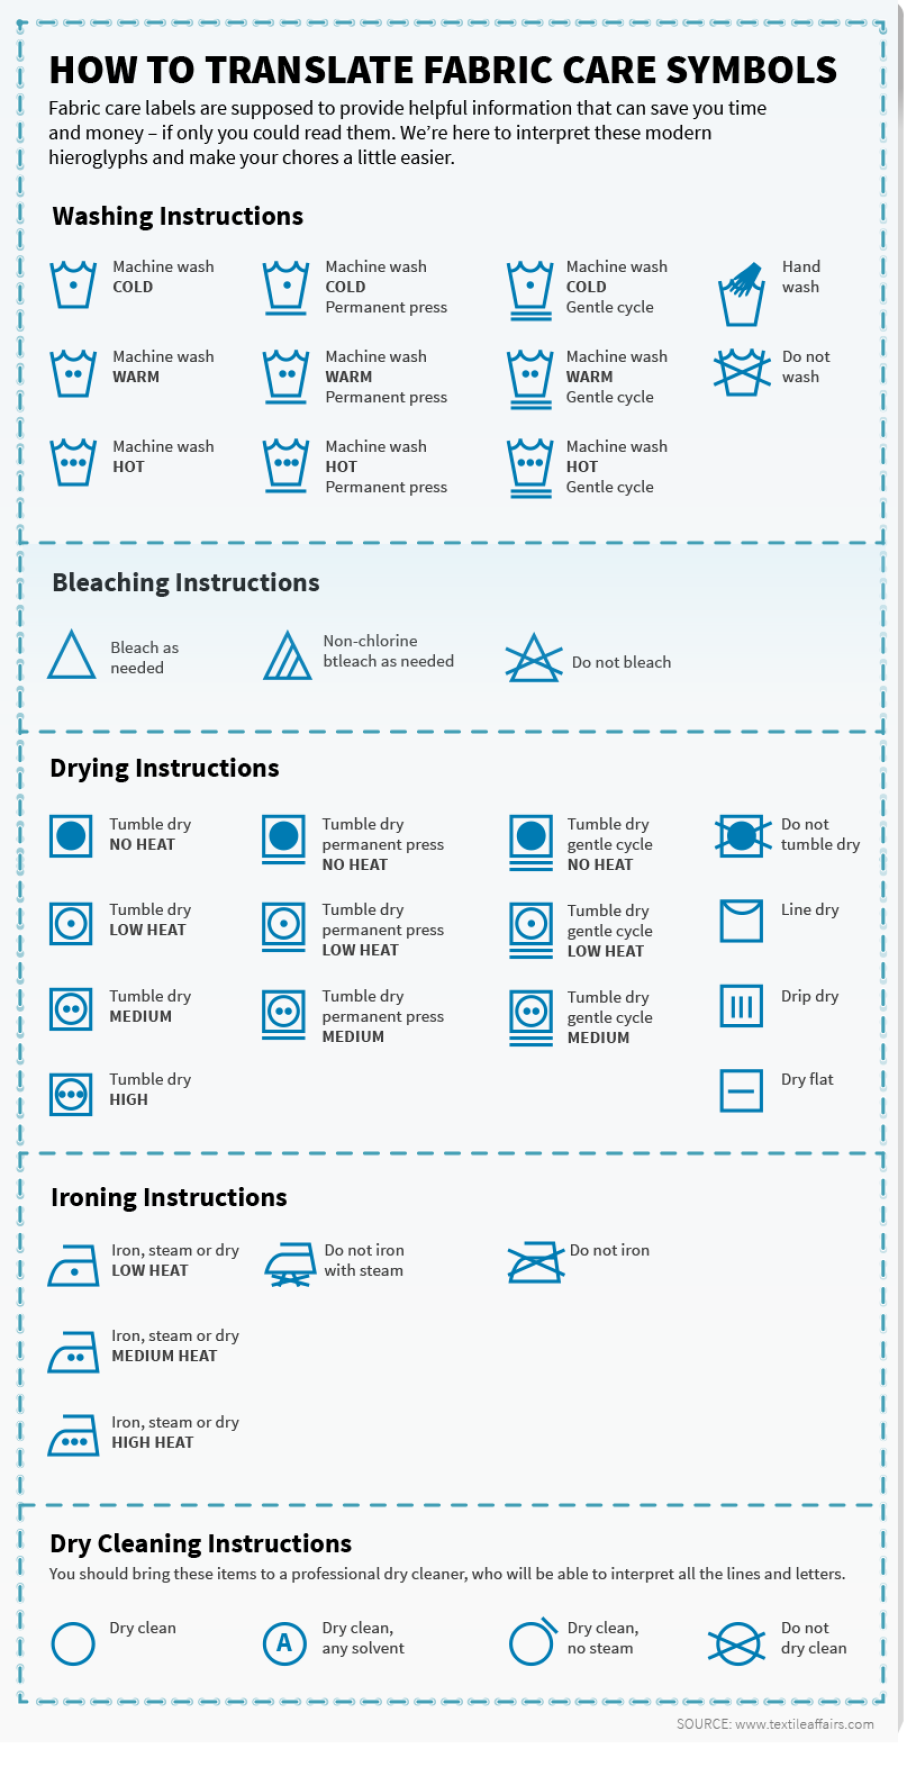 Auto Care Association >> The Label Lexicon - What's the deal with laundry symbols ...